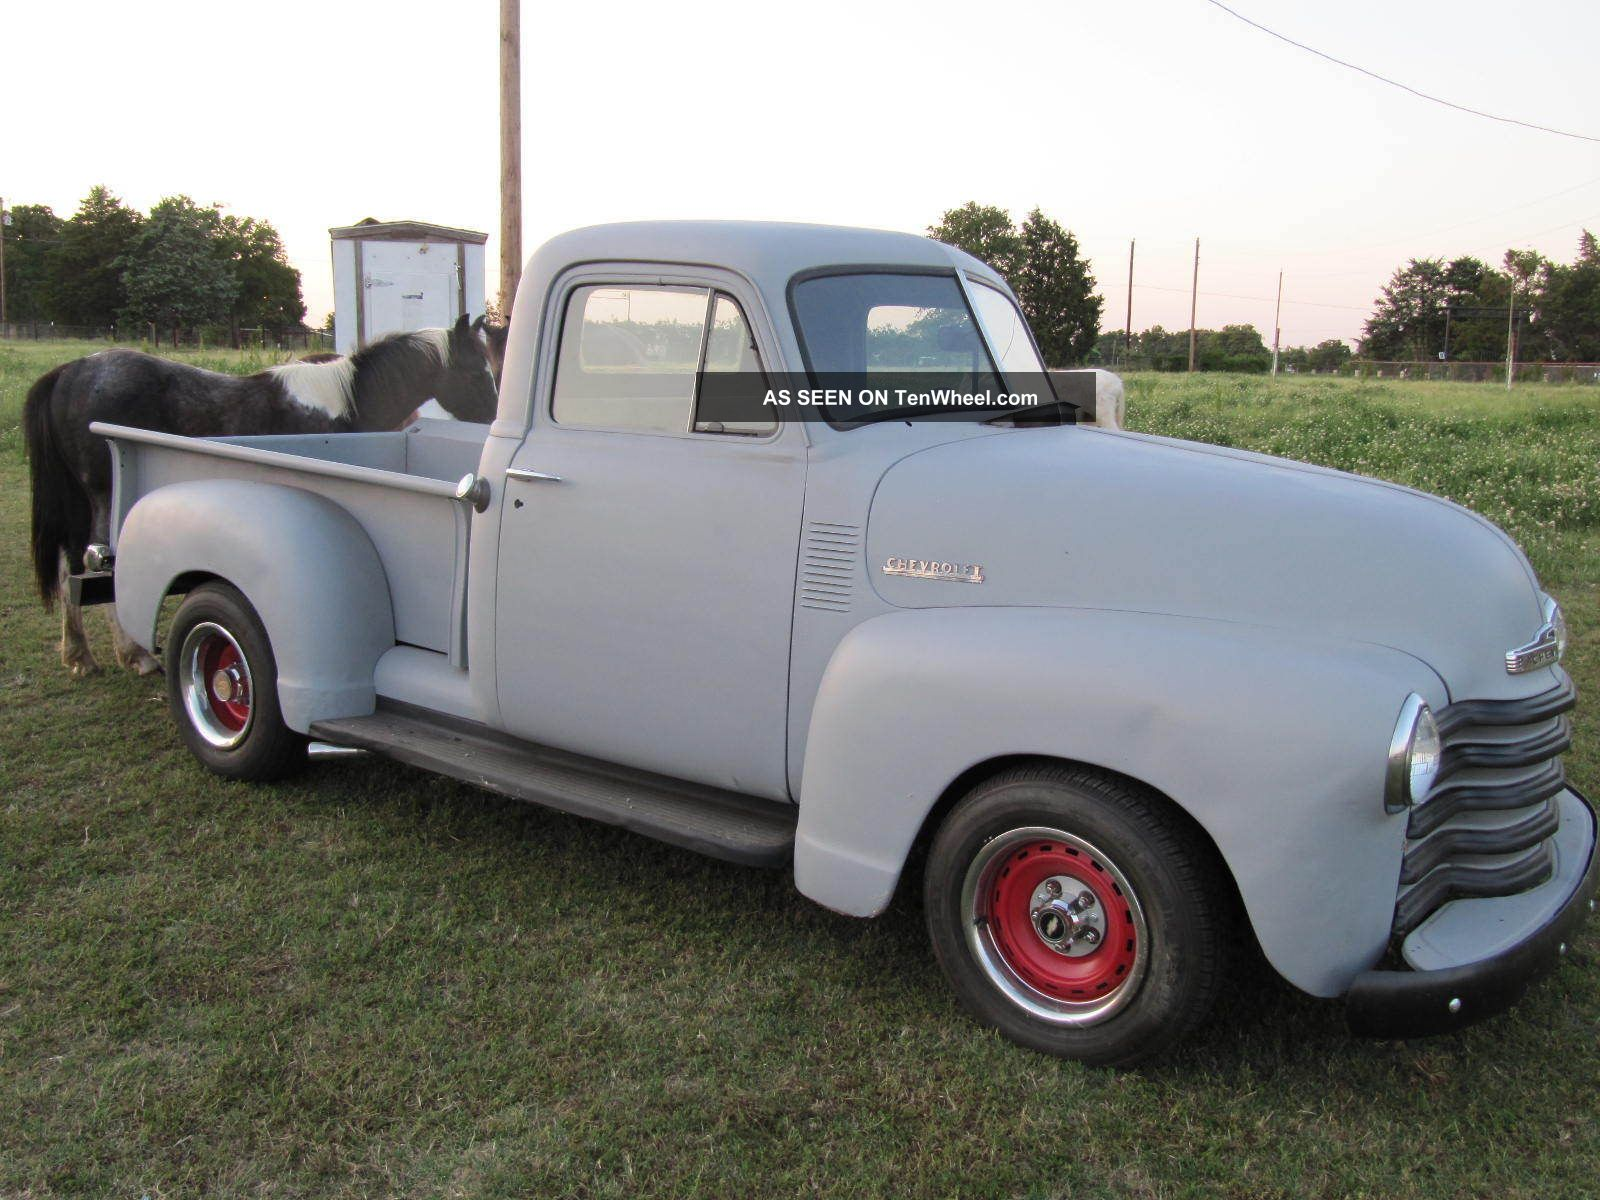 1951 Chevy Truck 3100 350 / 350 Runs And Drive Great Future Rat ...